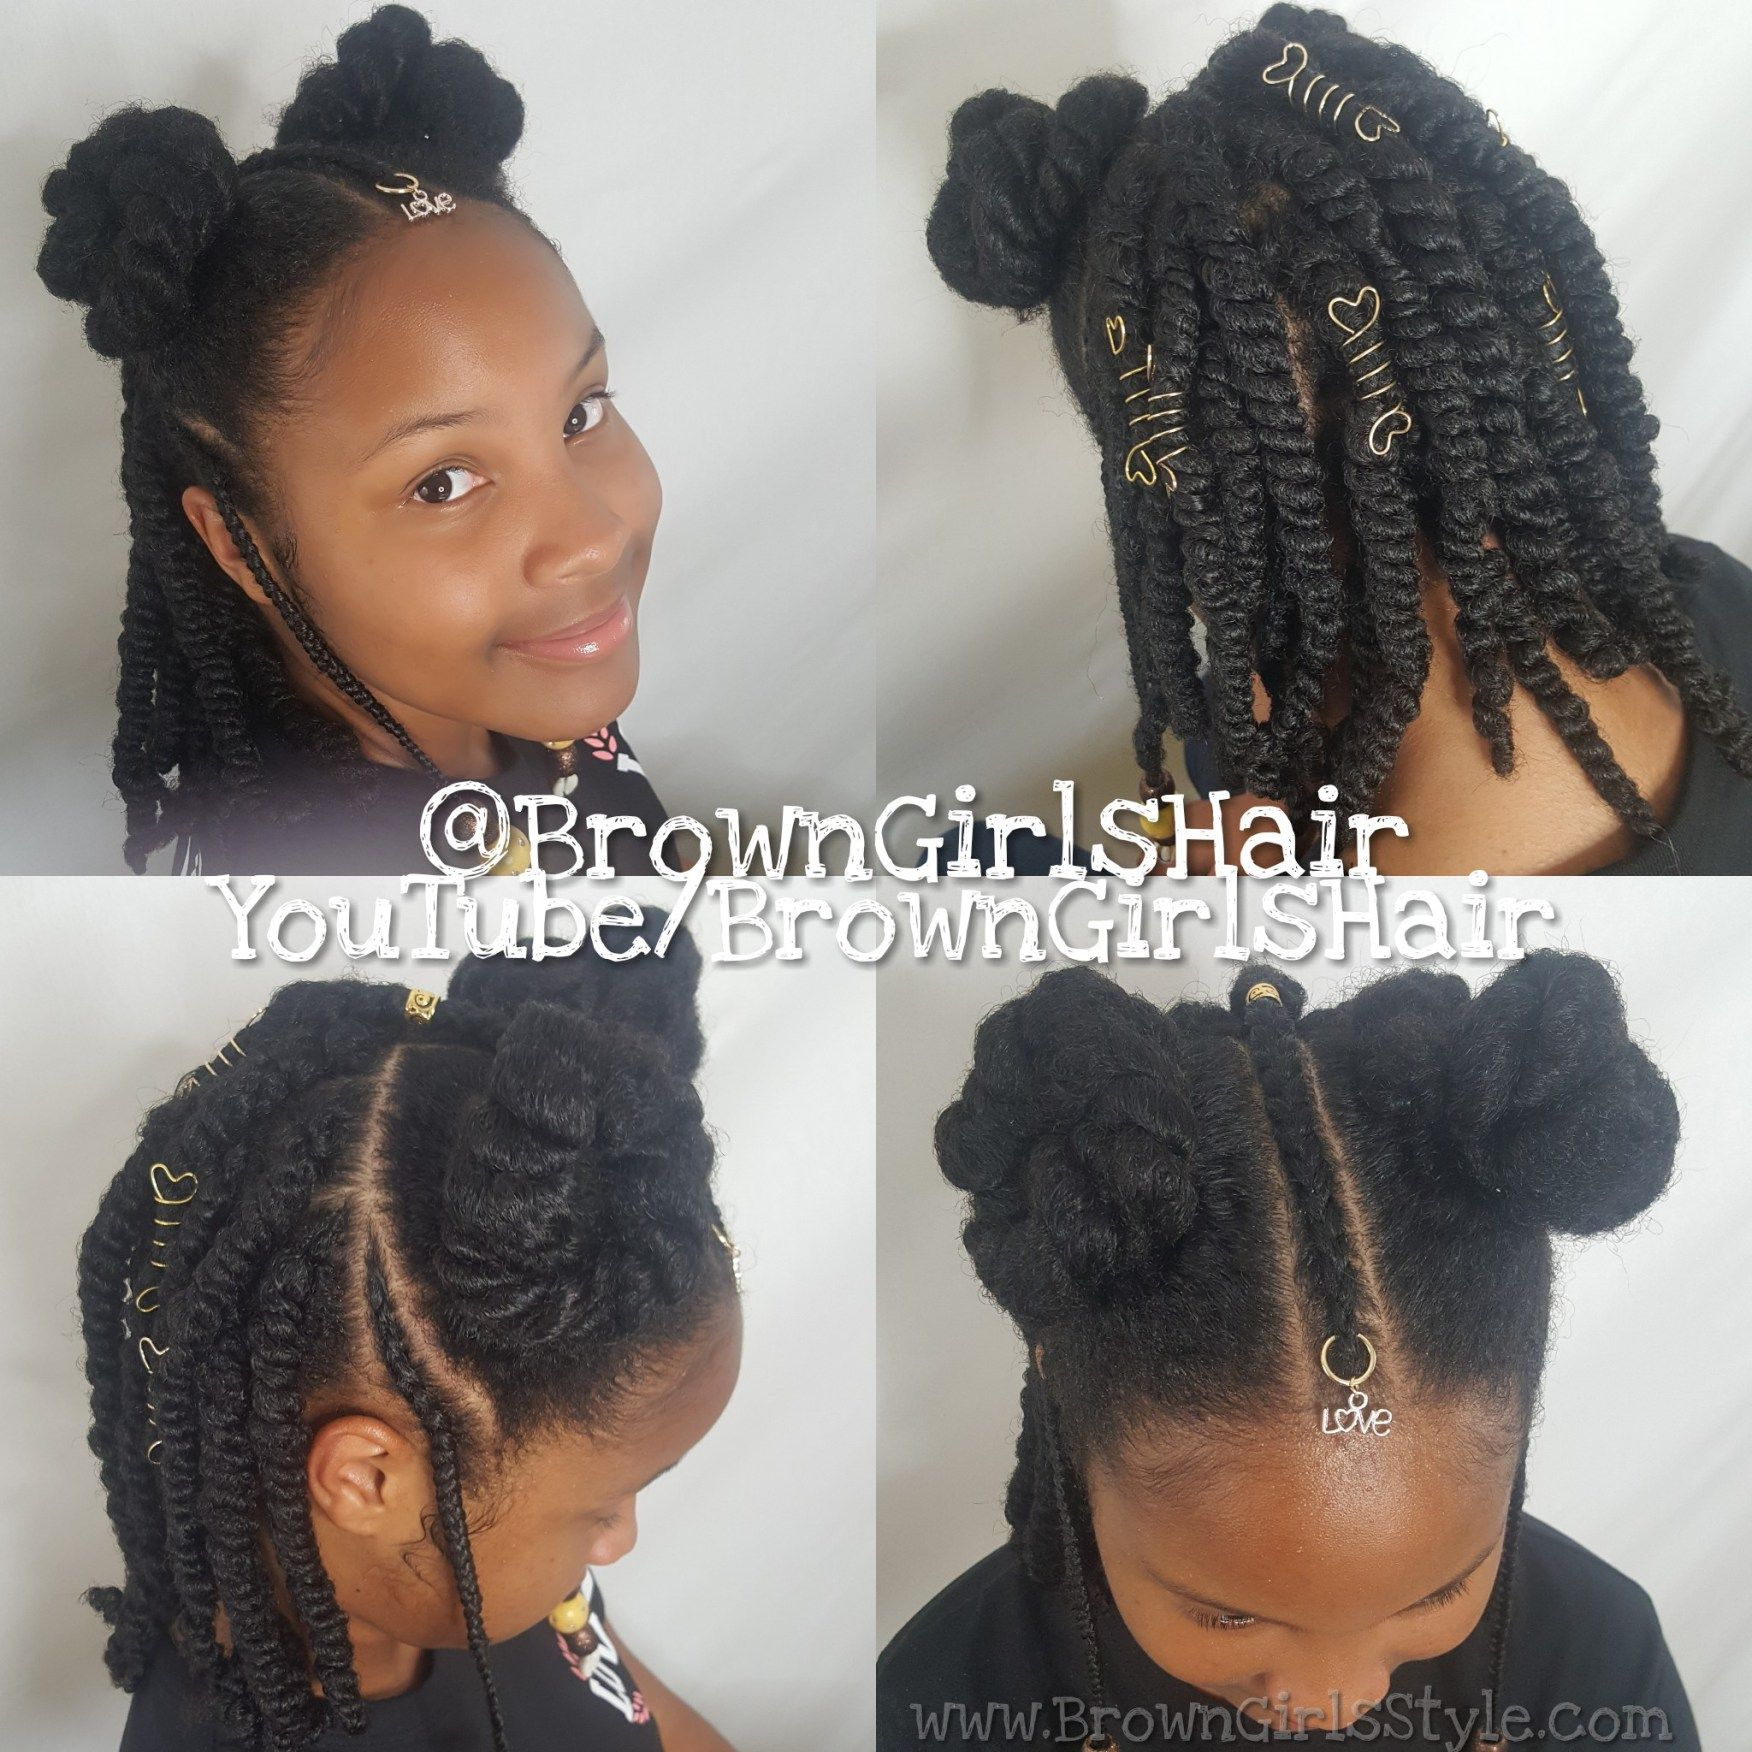 Natural Long Black Hair Care And Fashion Blog With Images